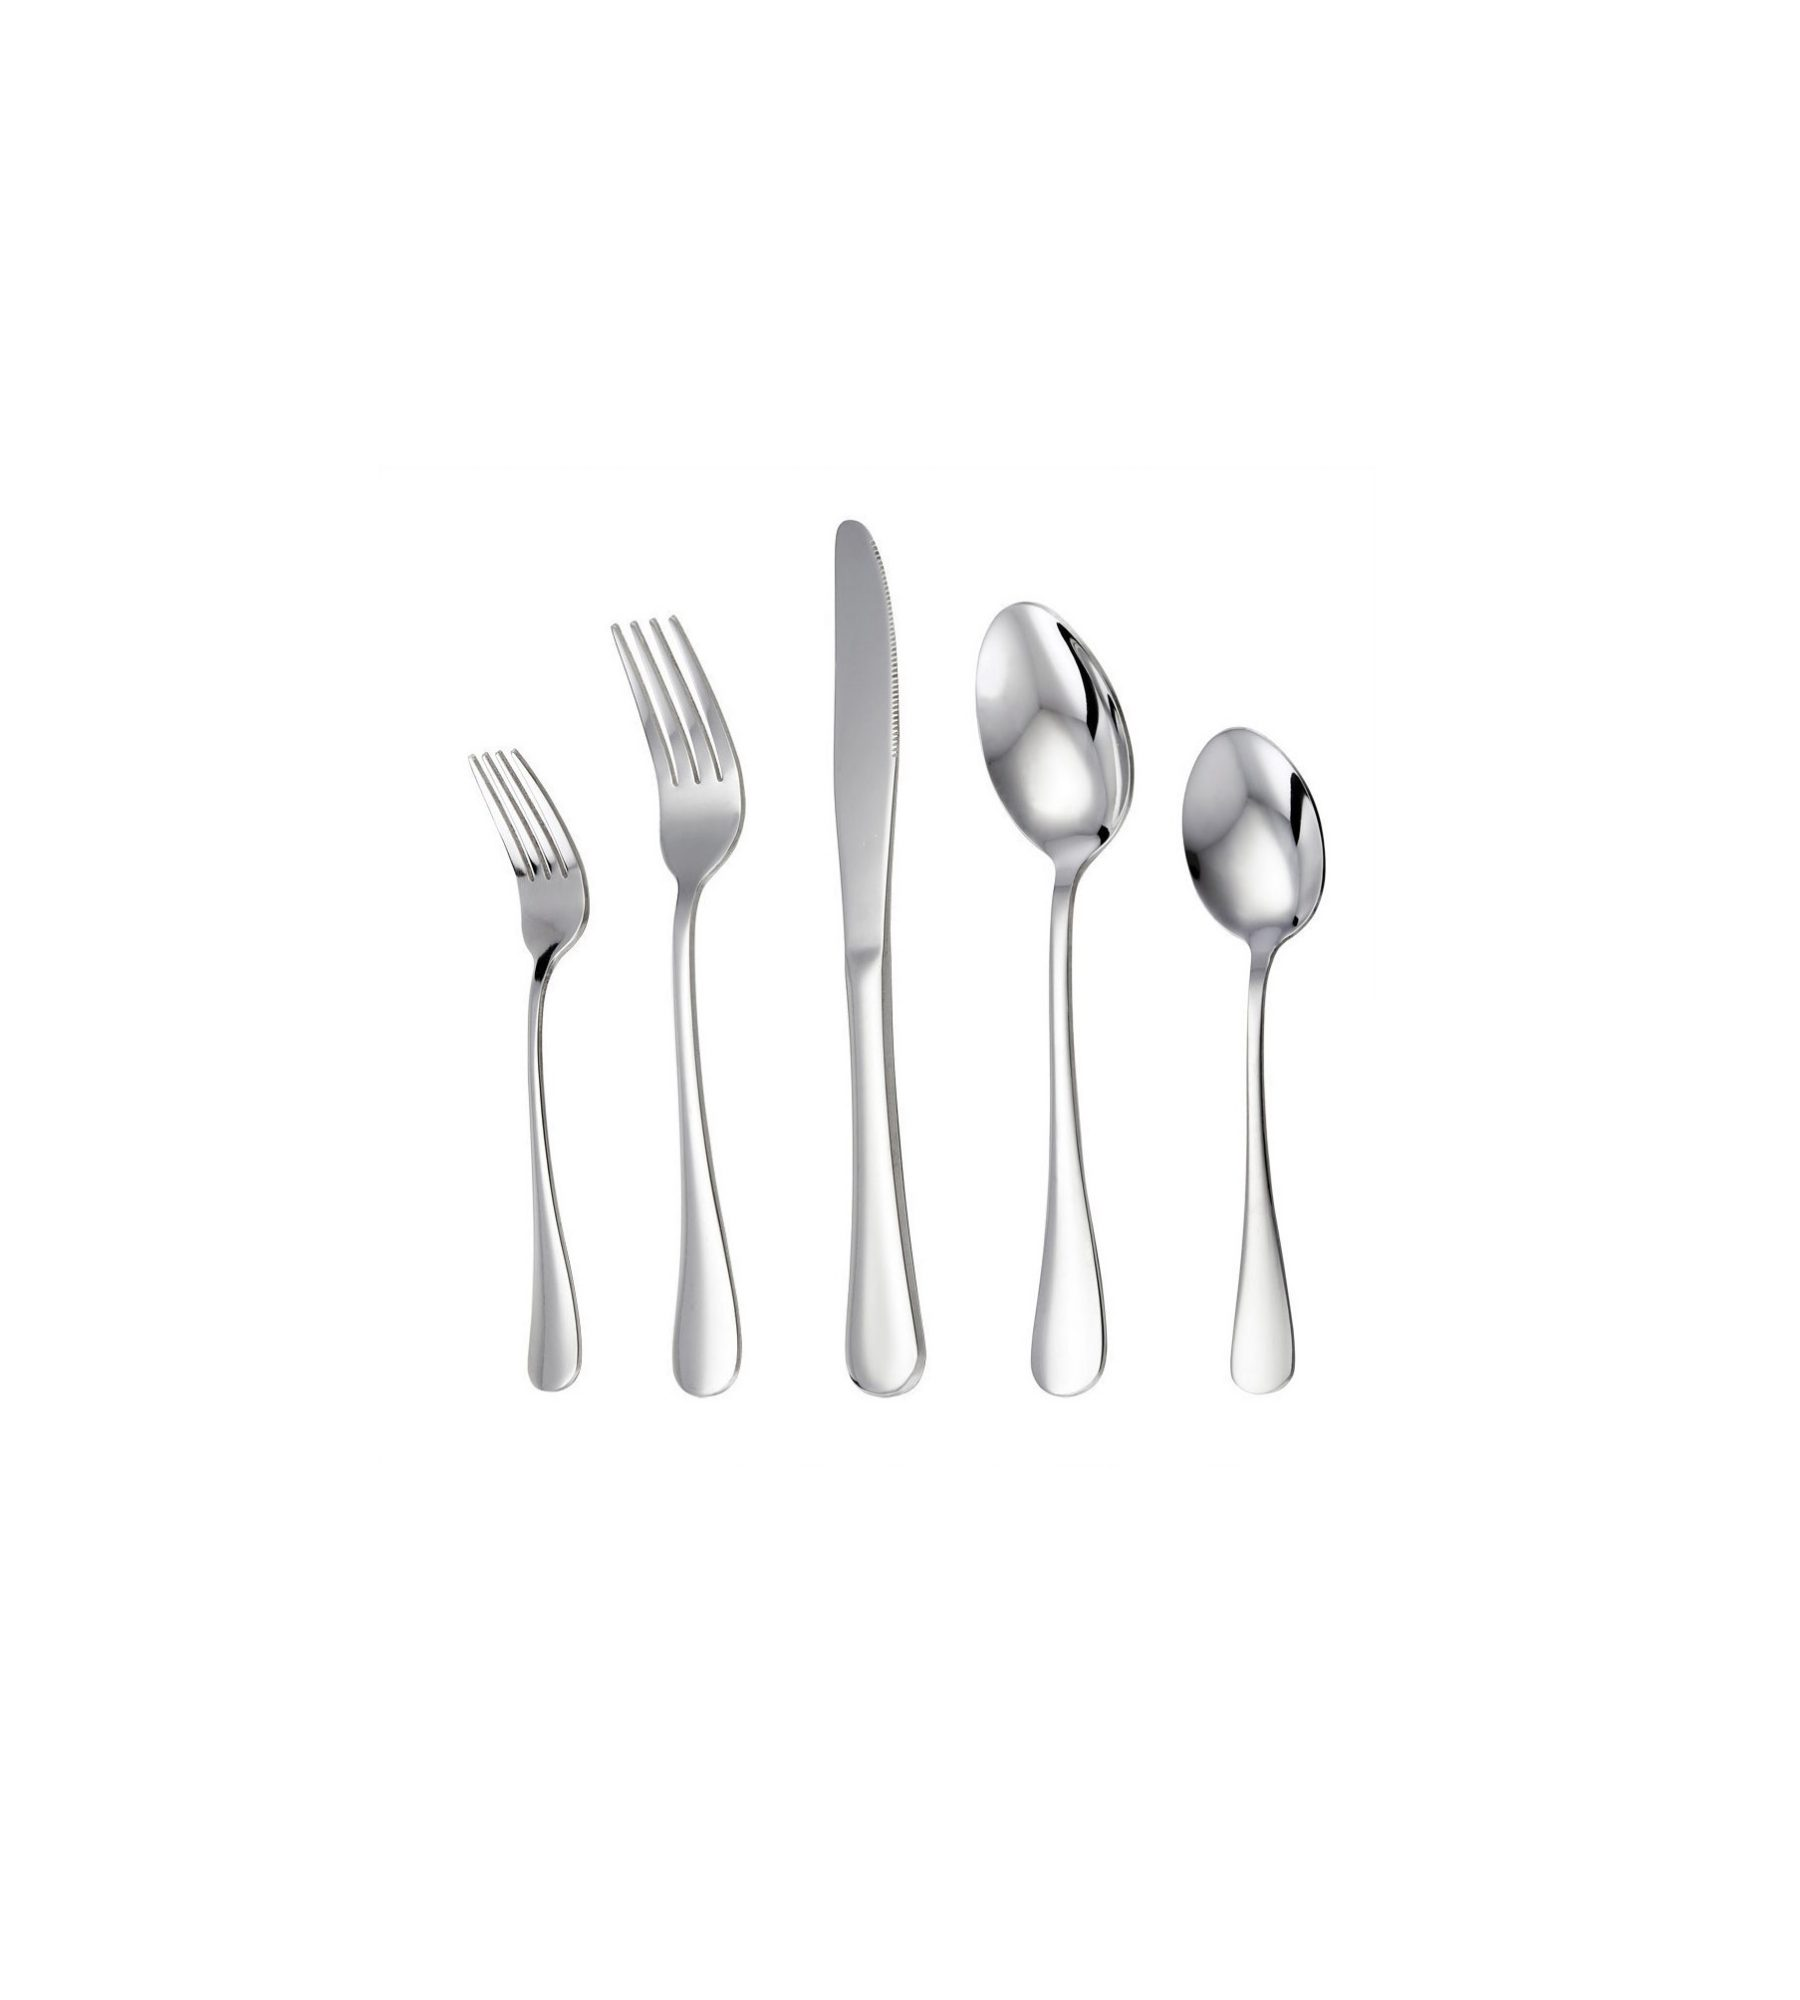 20-Piece Stainless Steel Flatware Set